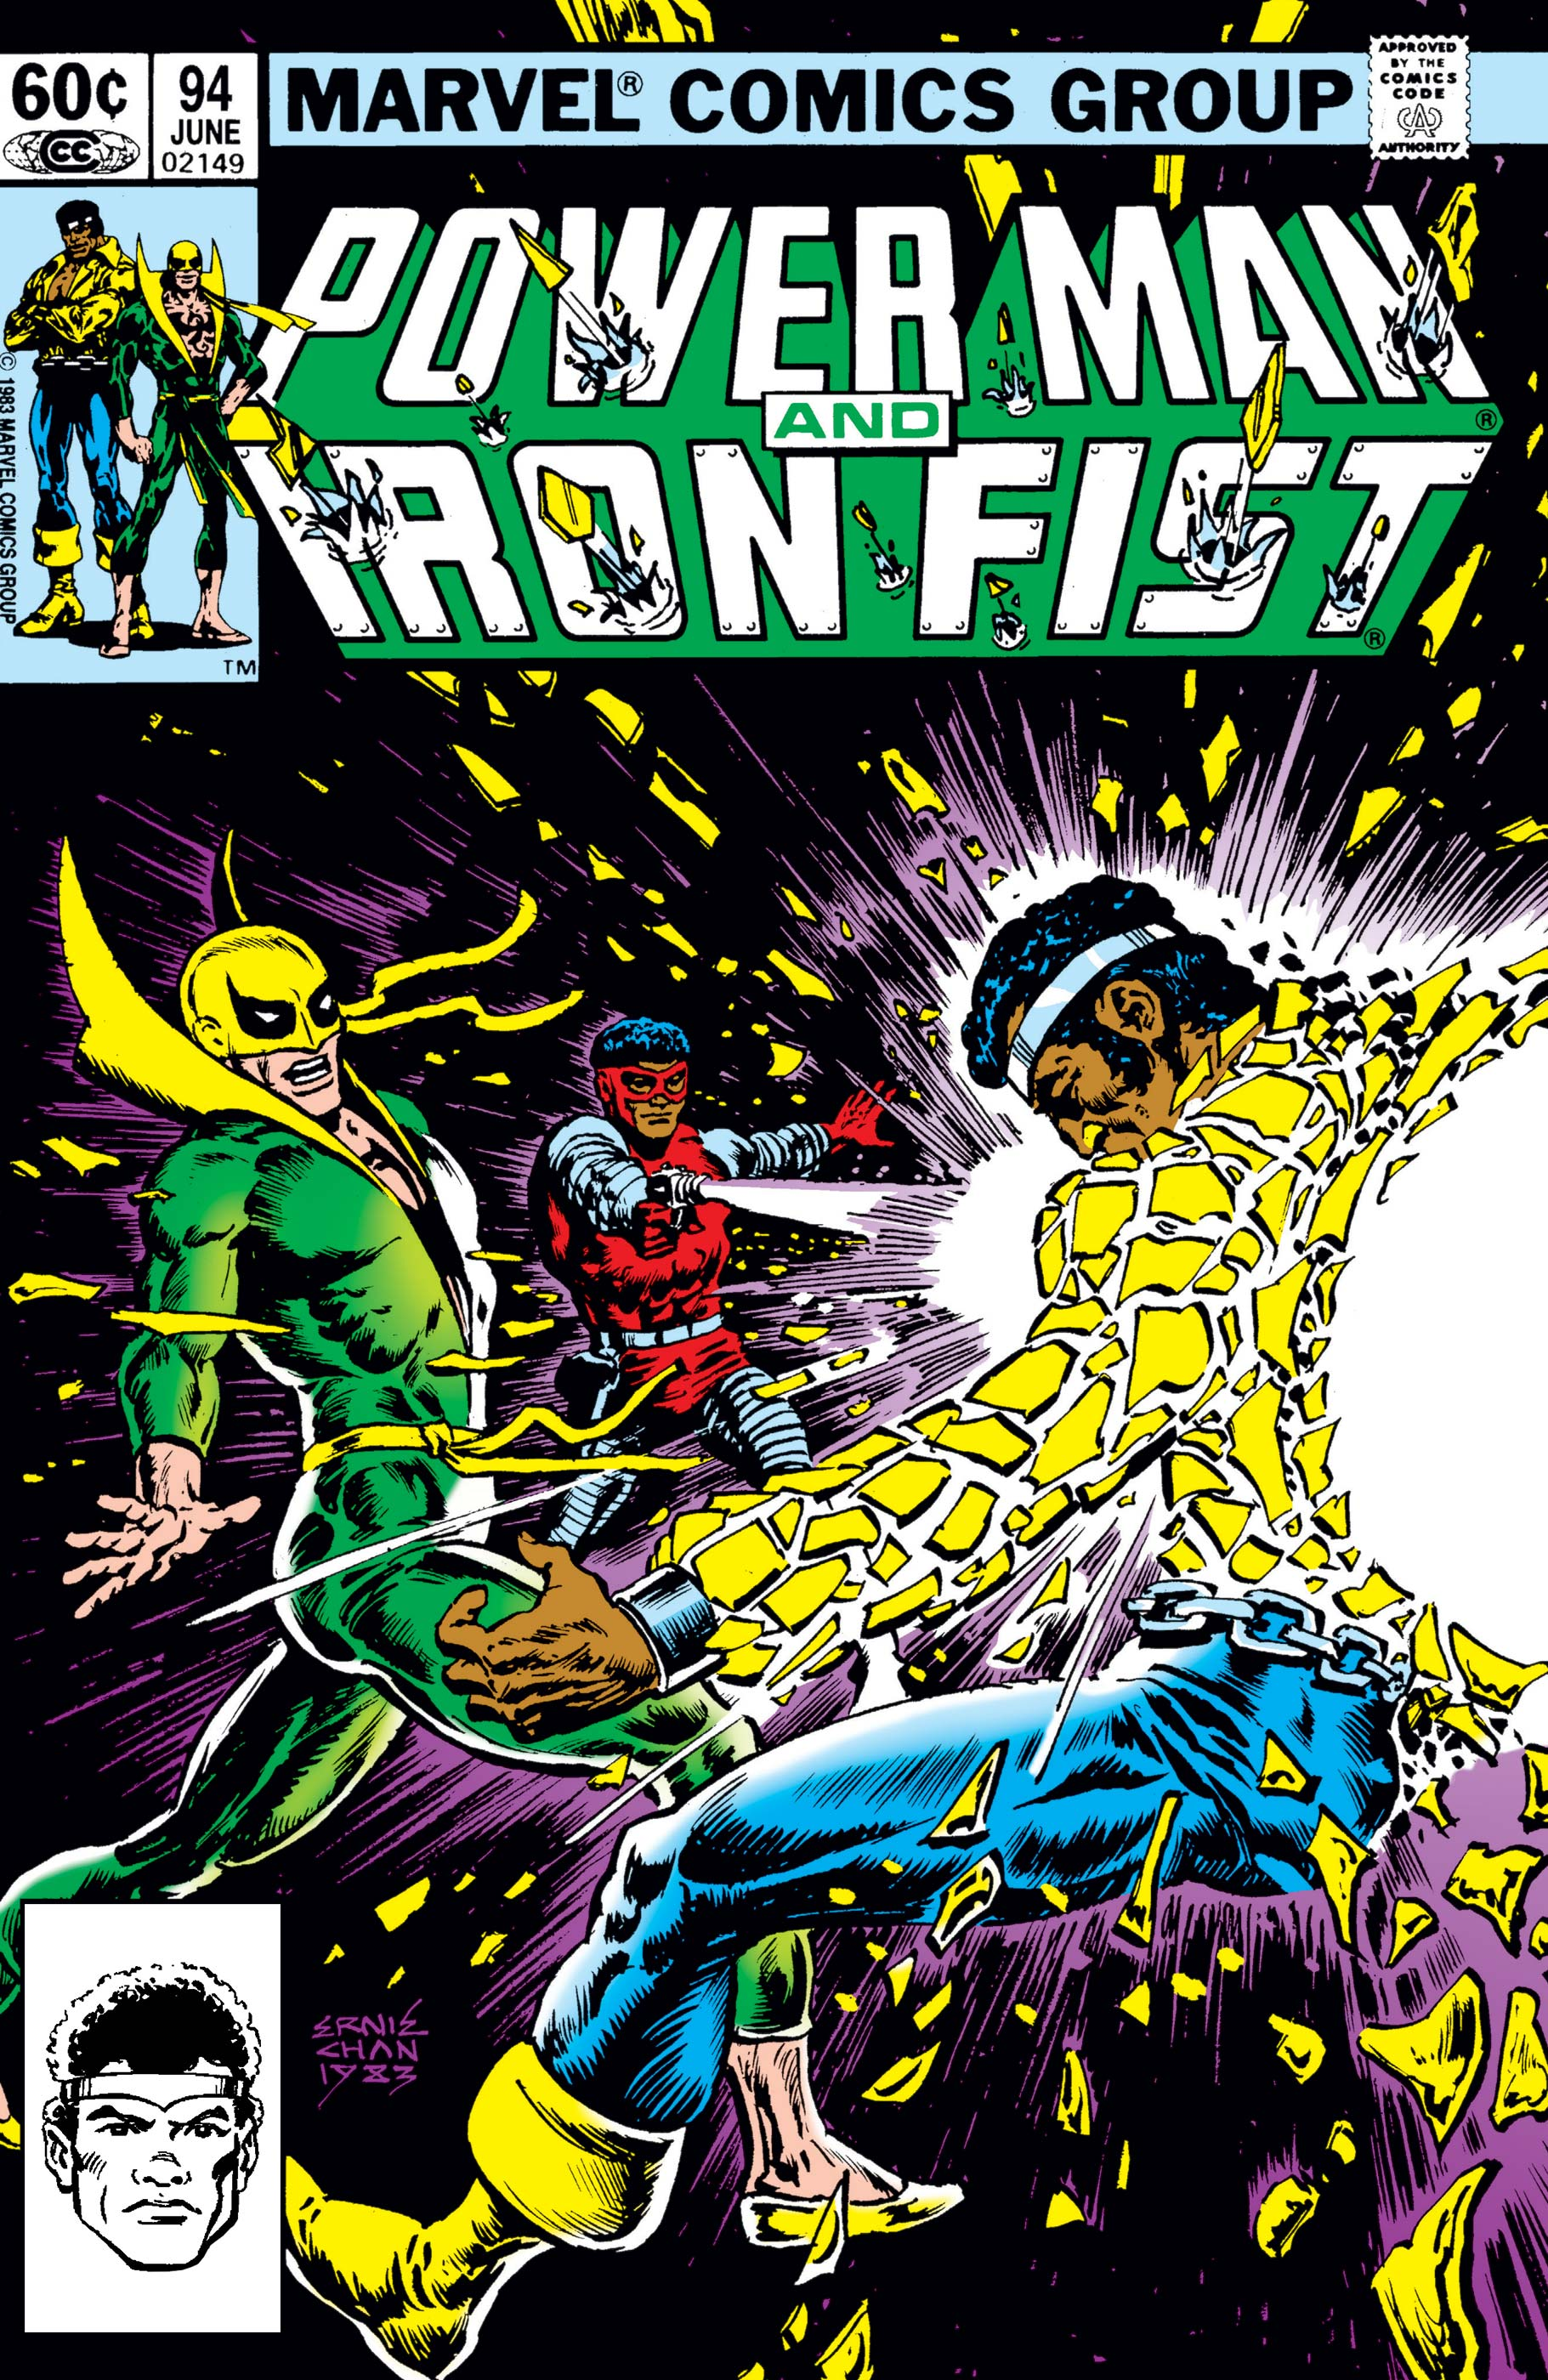 Power Man and Iron Fist (1978) #94